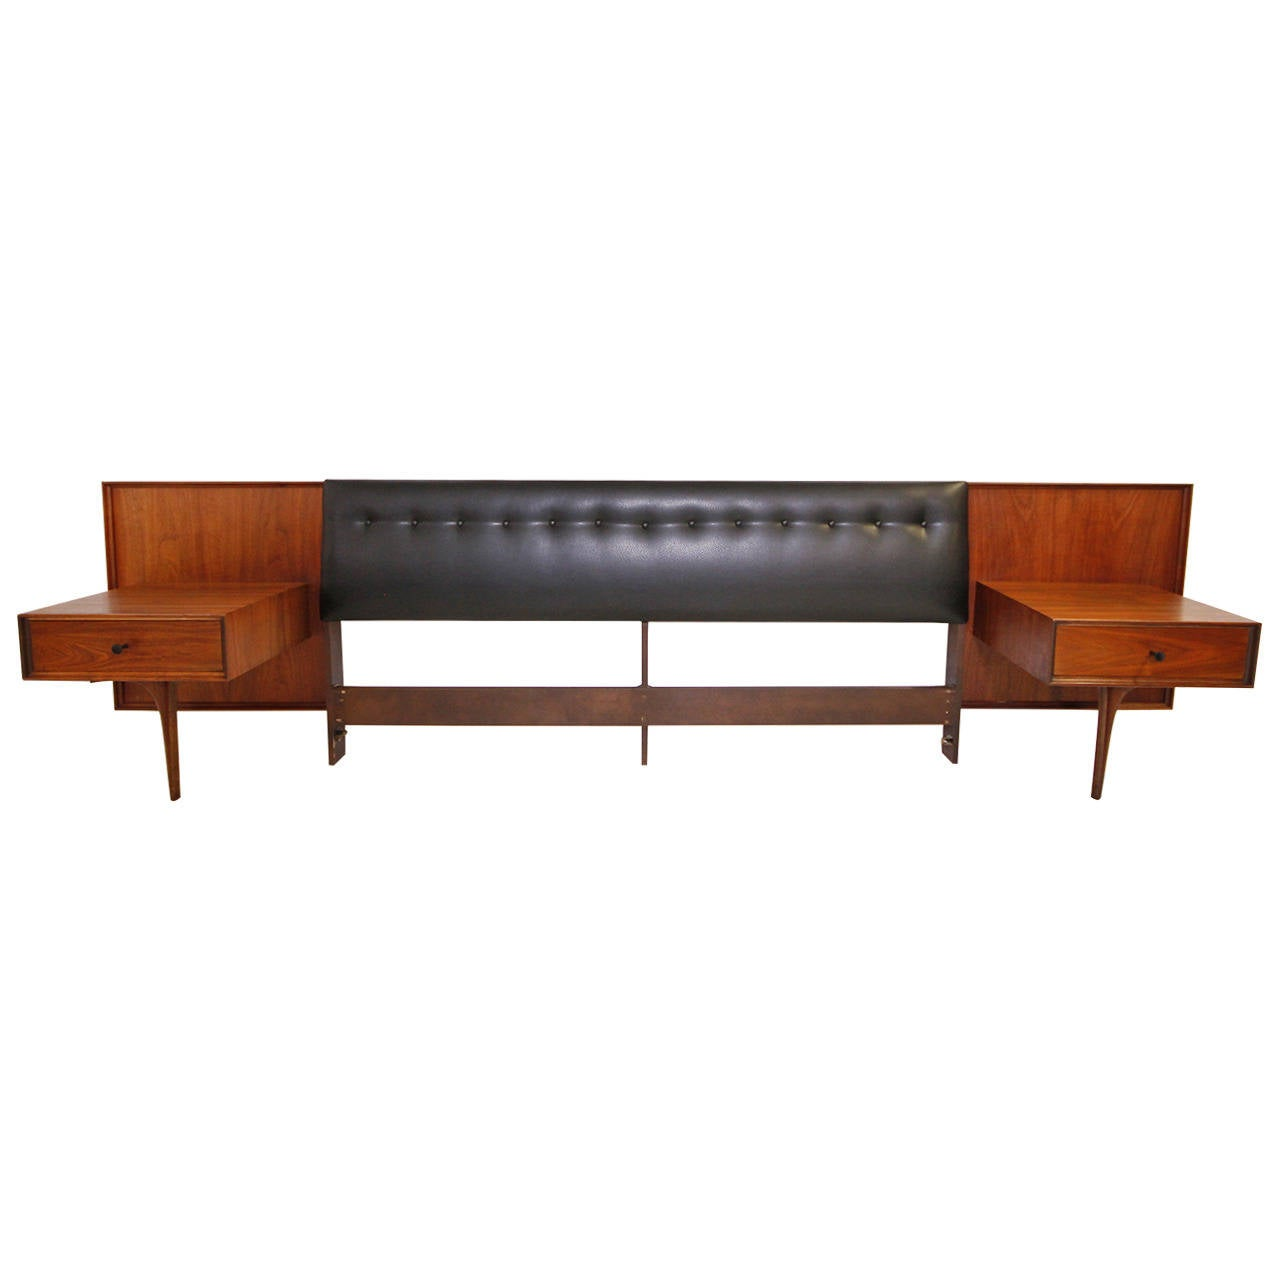 Stunning Mid Century Modern King Headboard with Floating Nightstands at 1stdibs